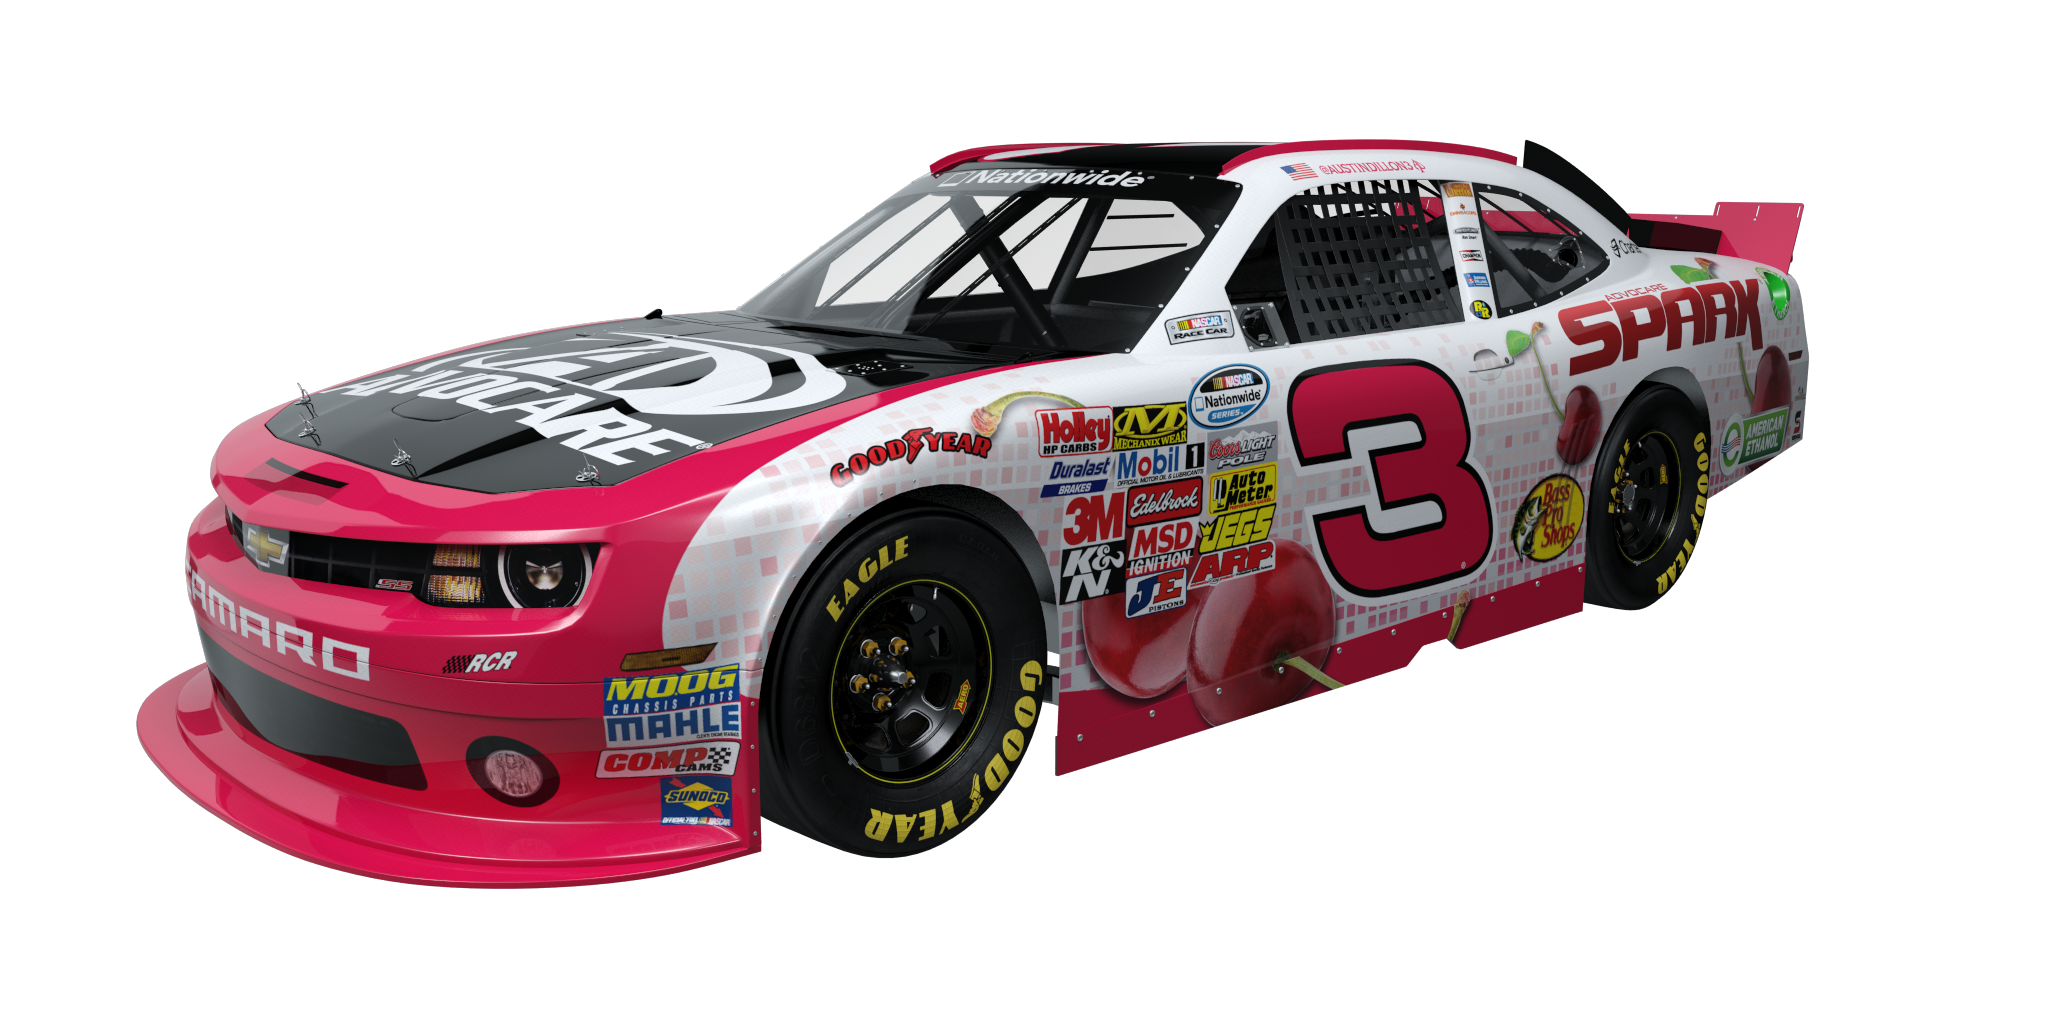 Watch For The Cherry 3 Car This Sunday At The Advocare